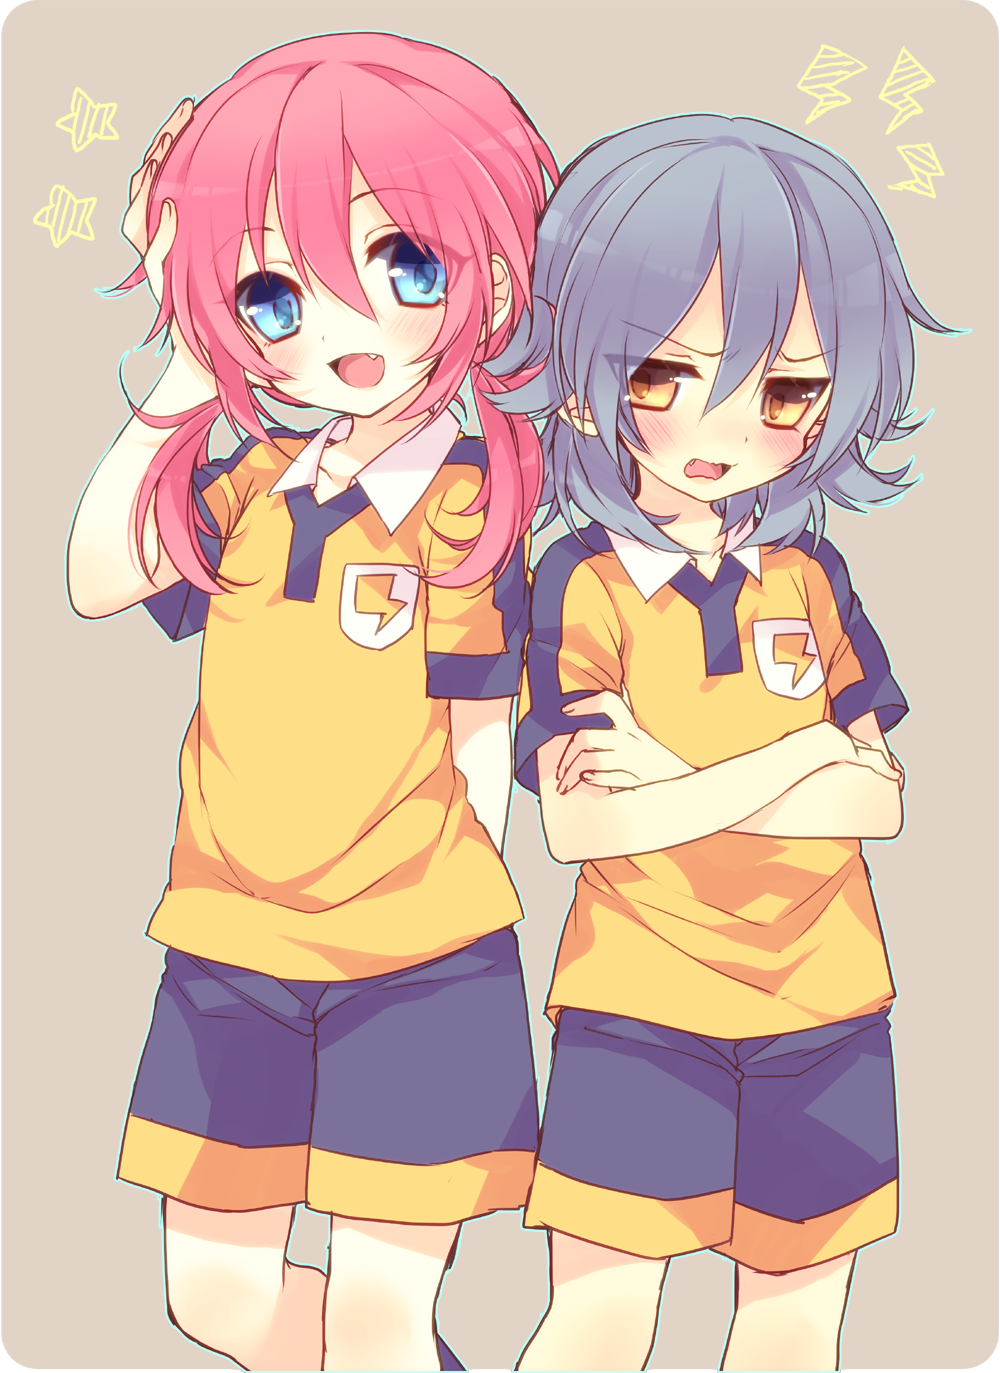 Pin by 二兎 on Inazuma, shipy in 2020 Anime, Eleventh